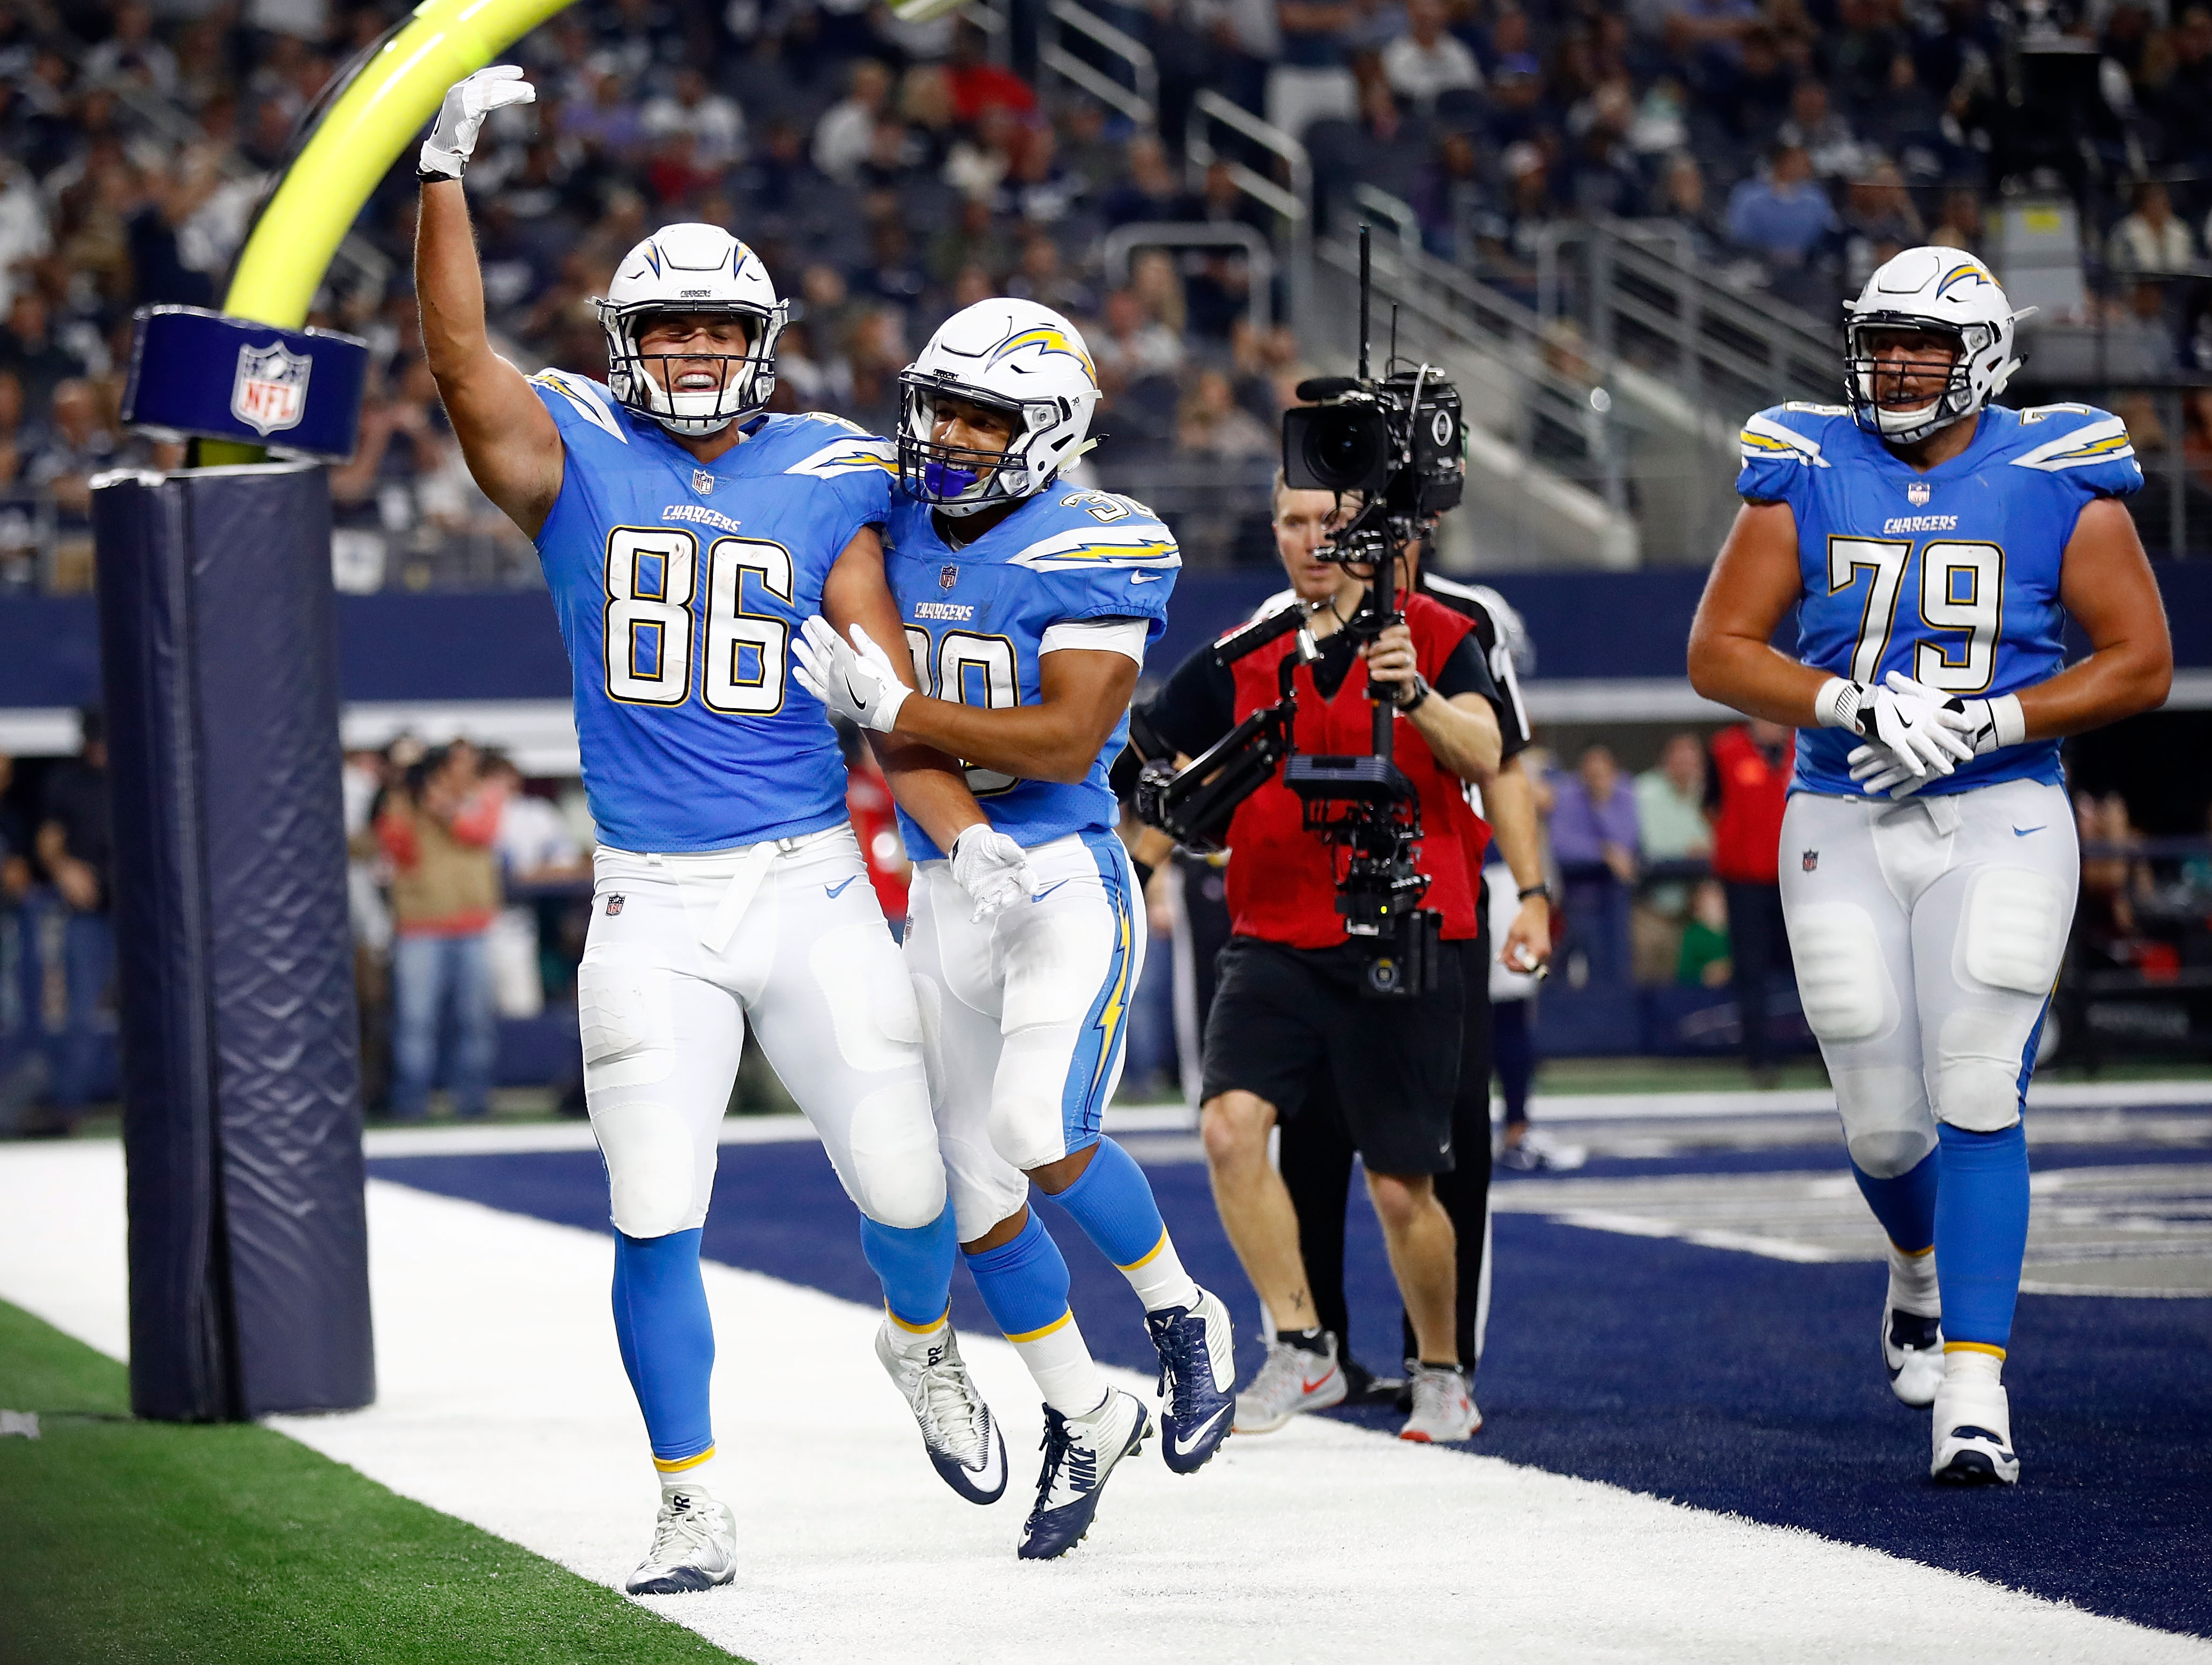 ARLINGTON, TX - NOVEMBER 23: Hunter Henry #86 of the Los Angeles Chargers and Austin Ekeler #30 of the Los Angeles Chargers celebrate a touchdown in the second half of a football game against the Dallas Cowboys at AT&T Stadium on November 23, 2017 in Arlington, Texas. (Photo by Wesley Hitt/Getty Images)